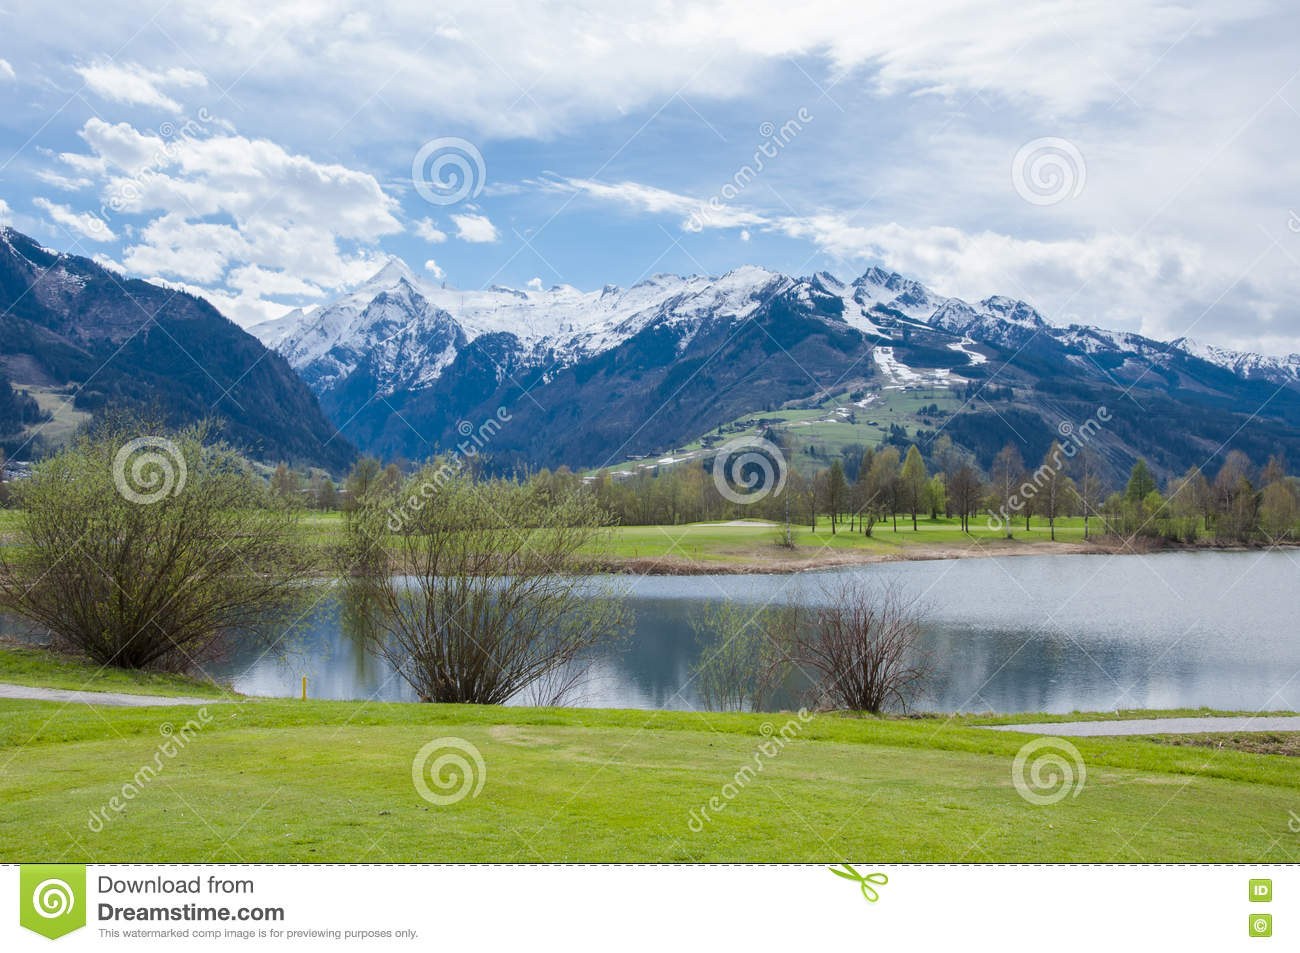 Golf course in mountains